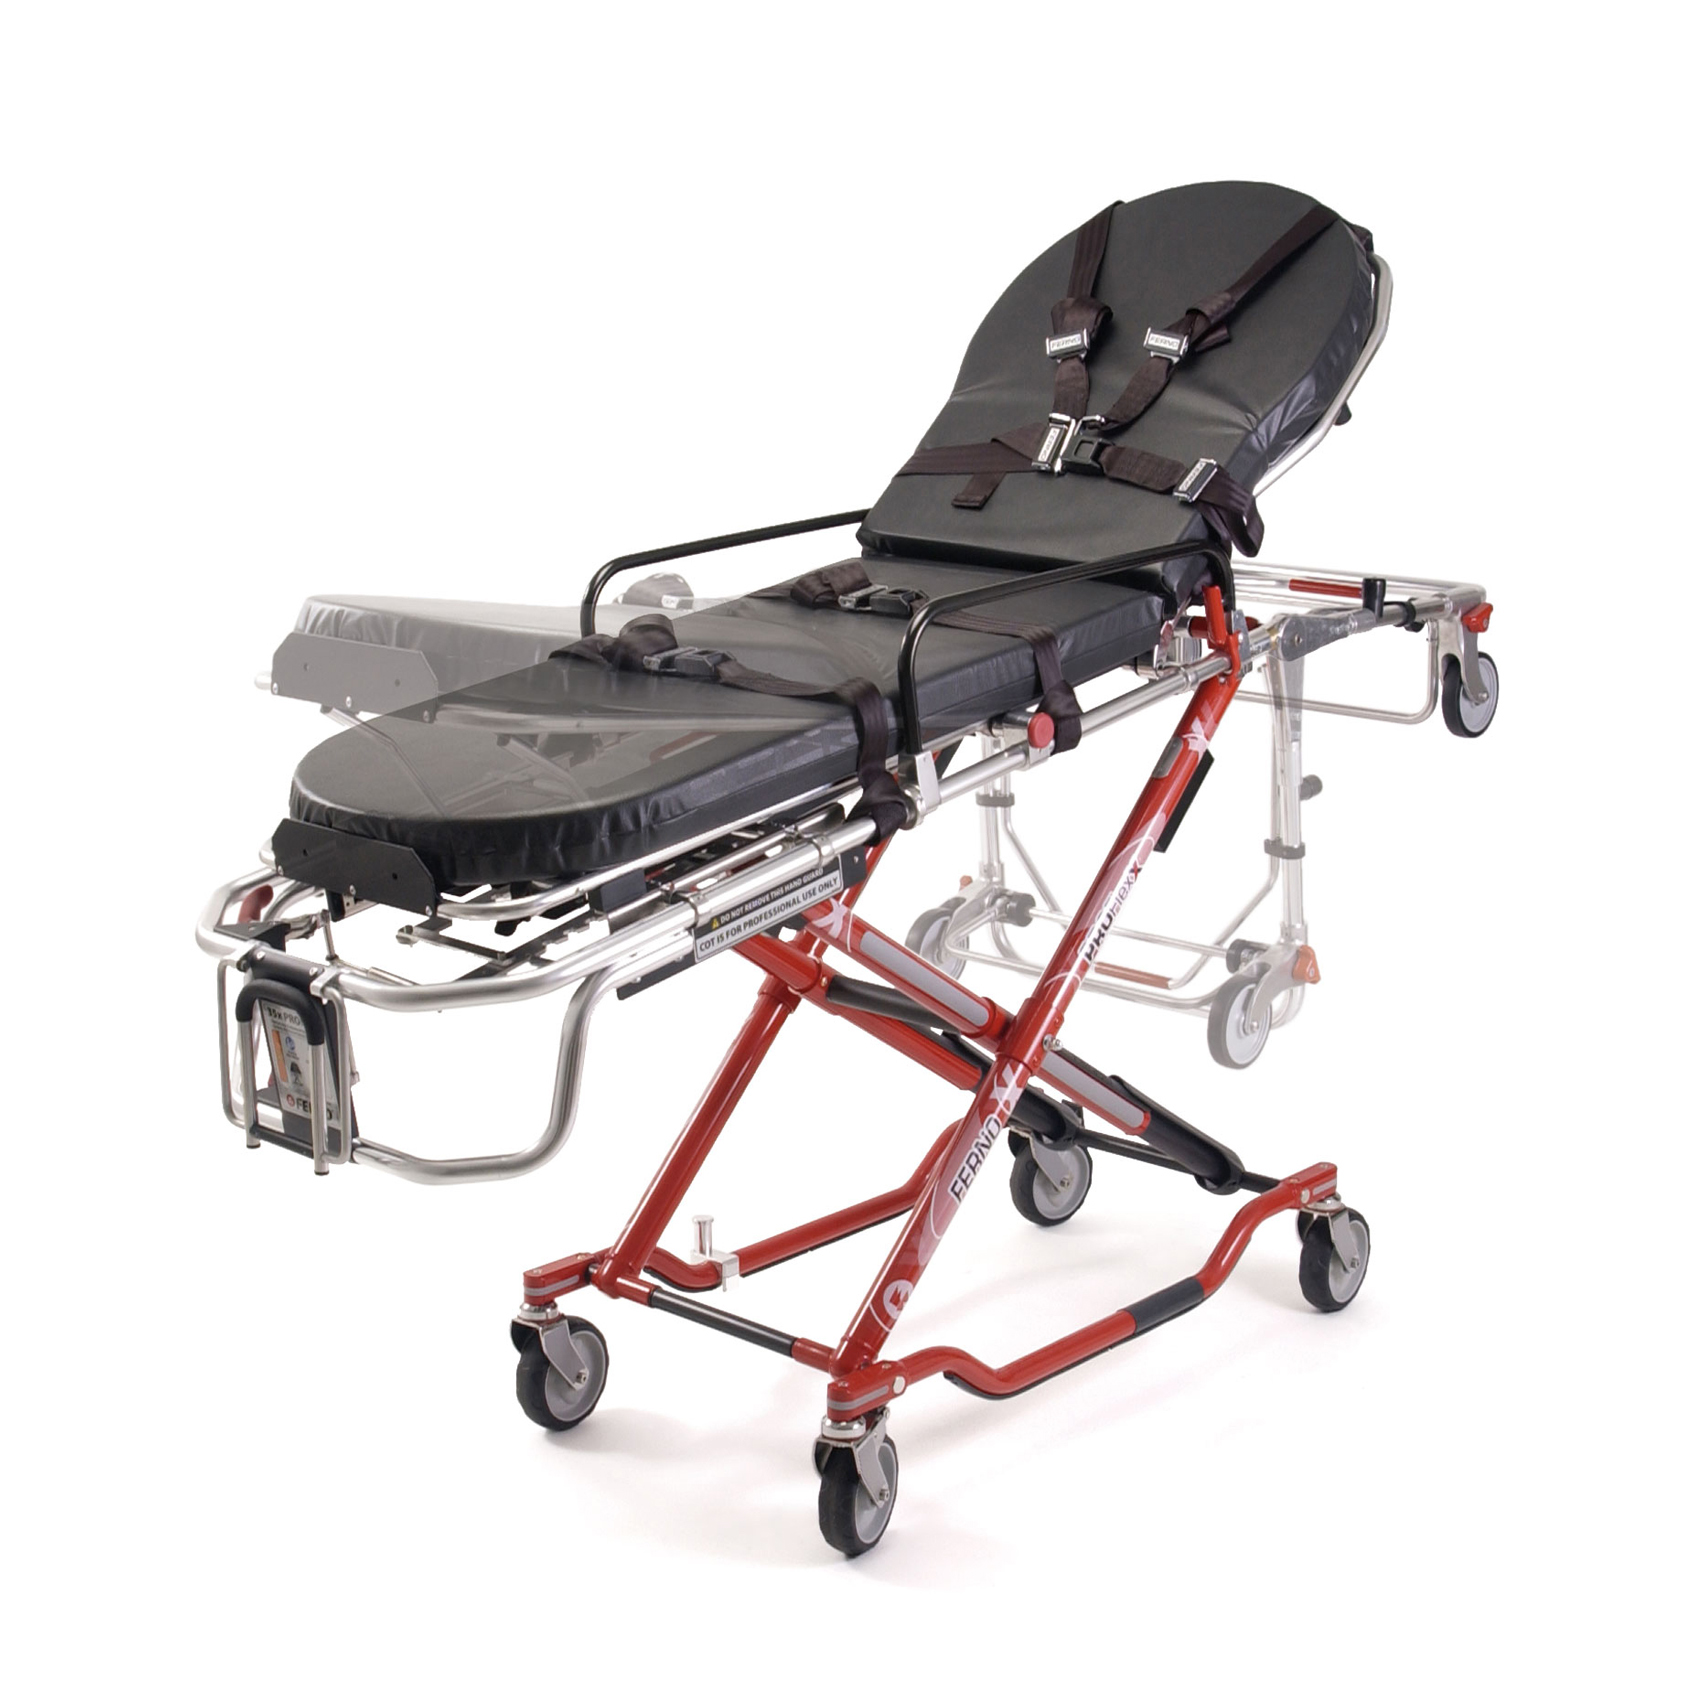 Stryker Stair Chair Ferno 35p Pro Flexx Refurbished Stretchers And Stair